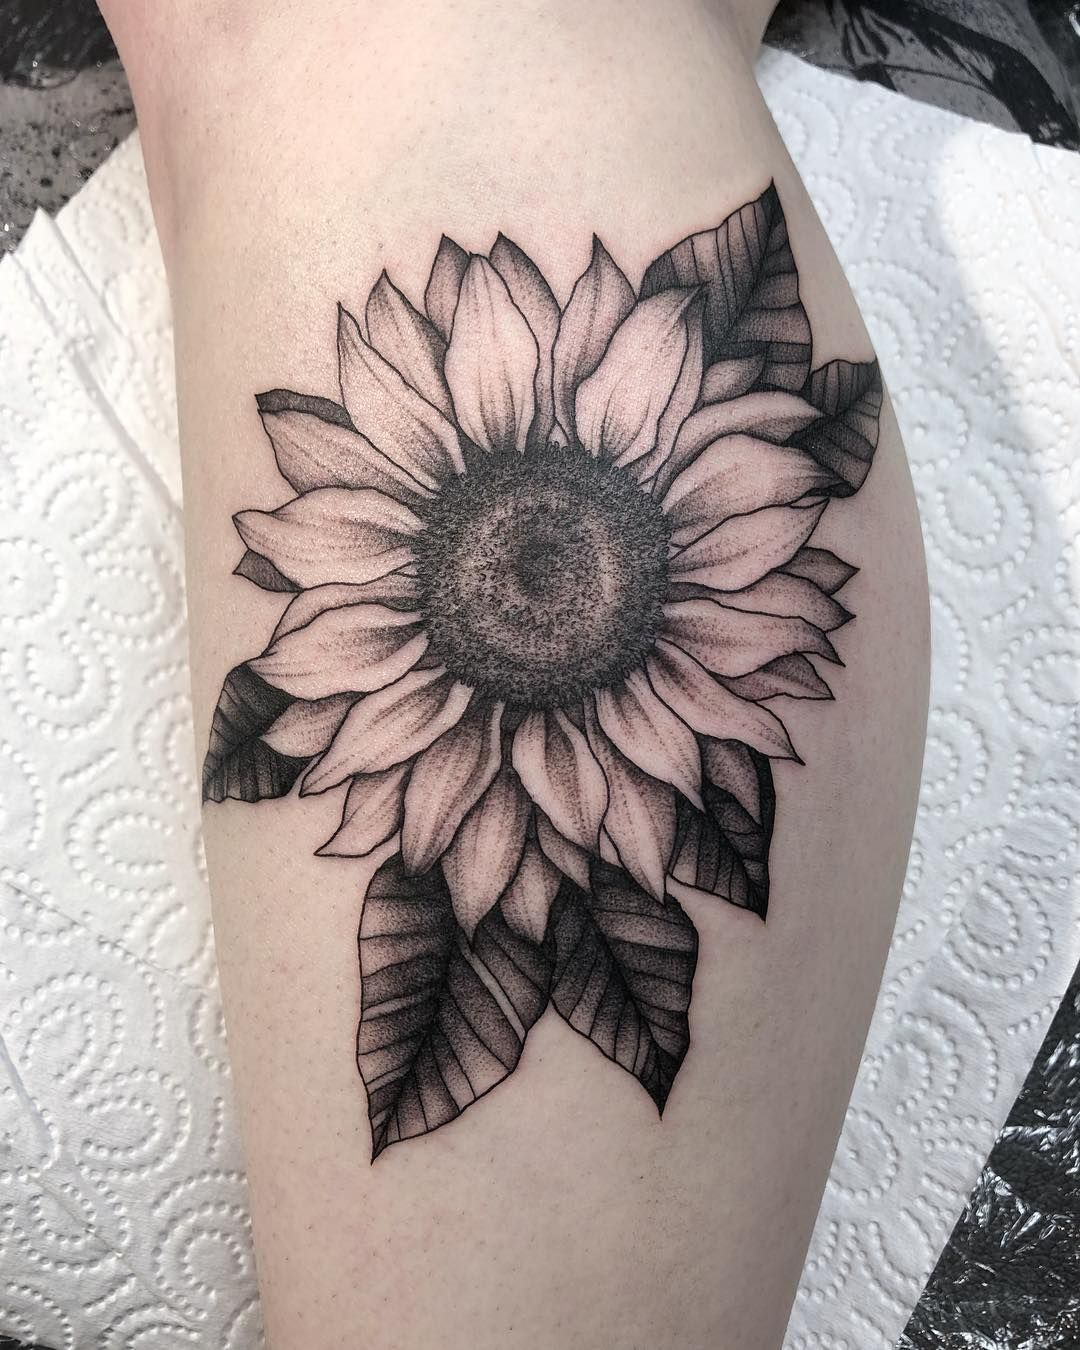 Sunflower Done Today For Lovely Faye Thankyou So Much Again For